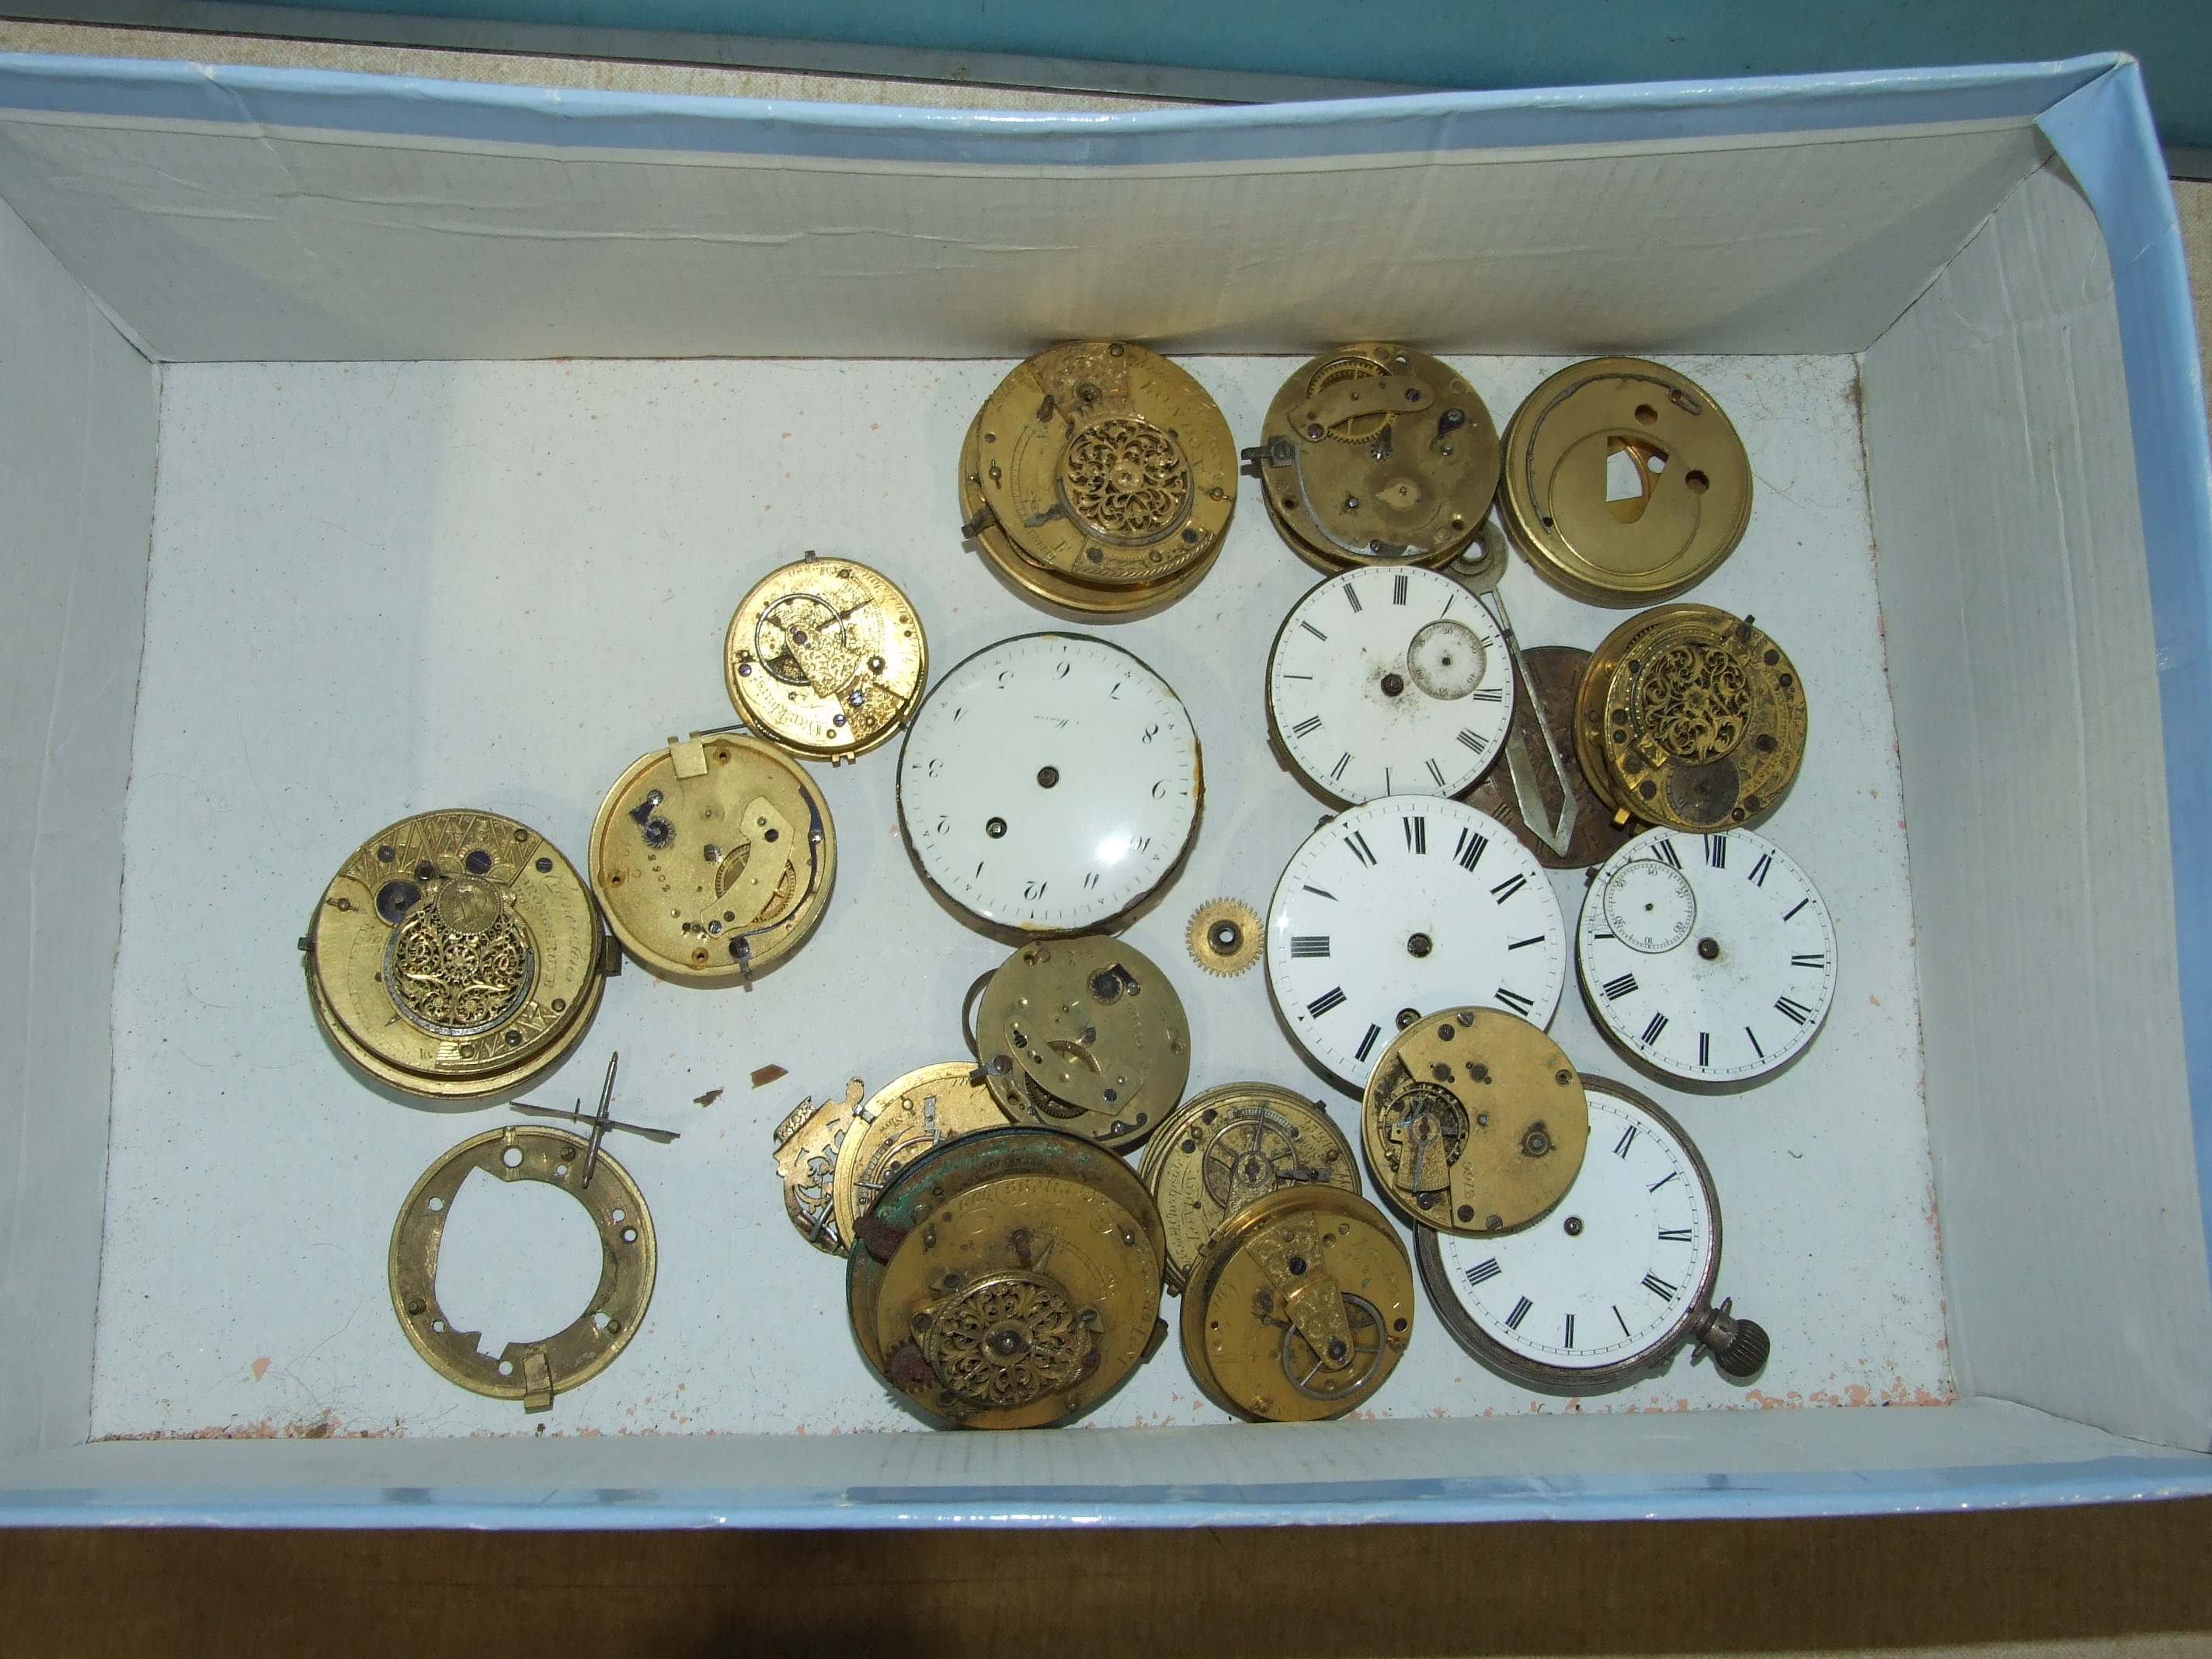 Lot 186 - Seven white metal pocket watches, (a/f), including a silver pair-case watch case and various